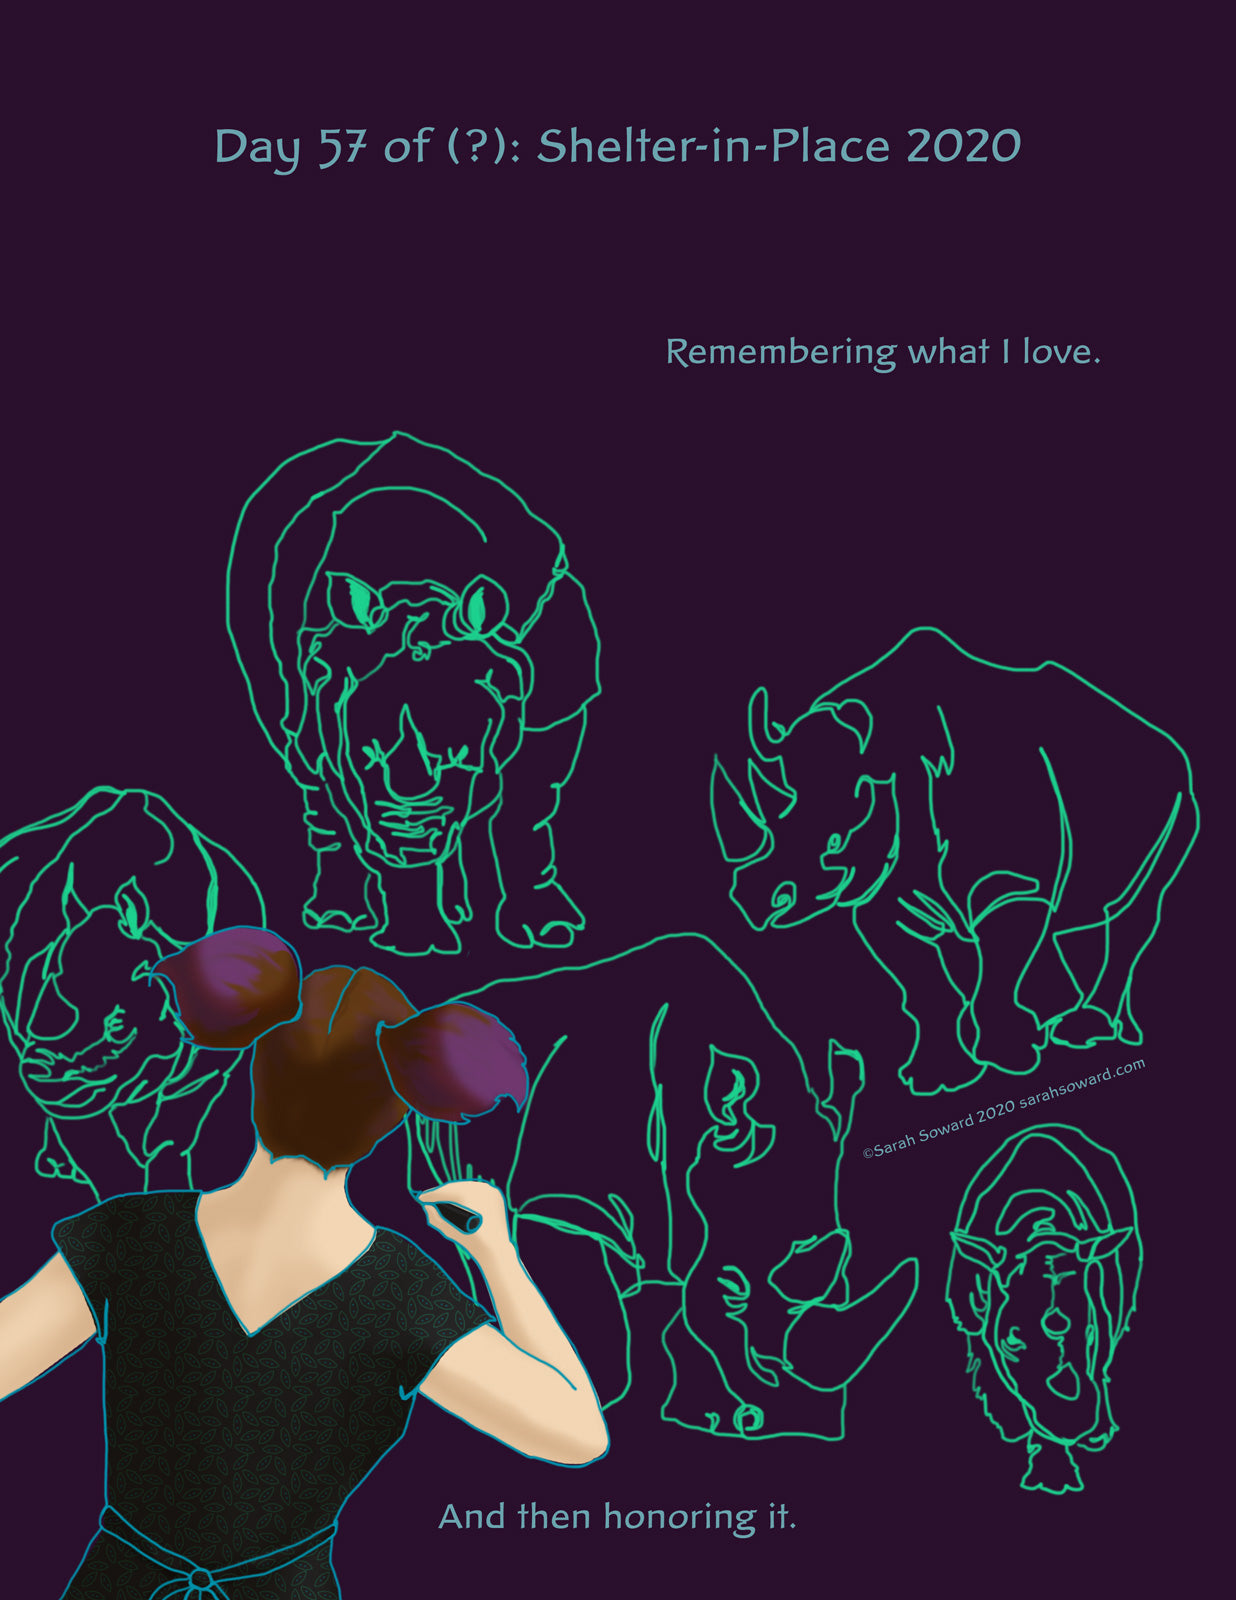 You see the back upper body of a woman drawing in purple space. She's making line drawings of rhinos in glowing green. The text on the image reads  Remembering what I love. And then honoring it.